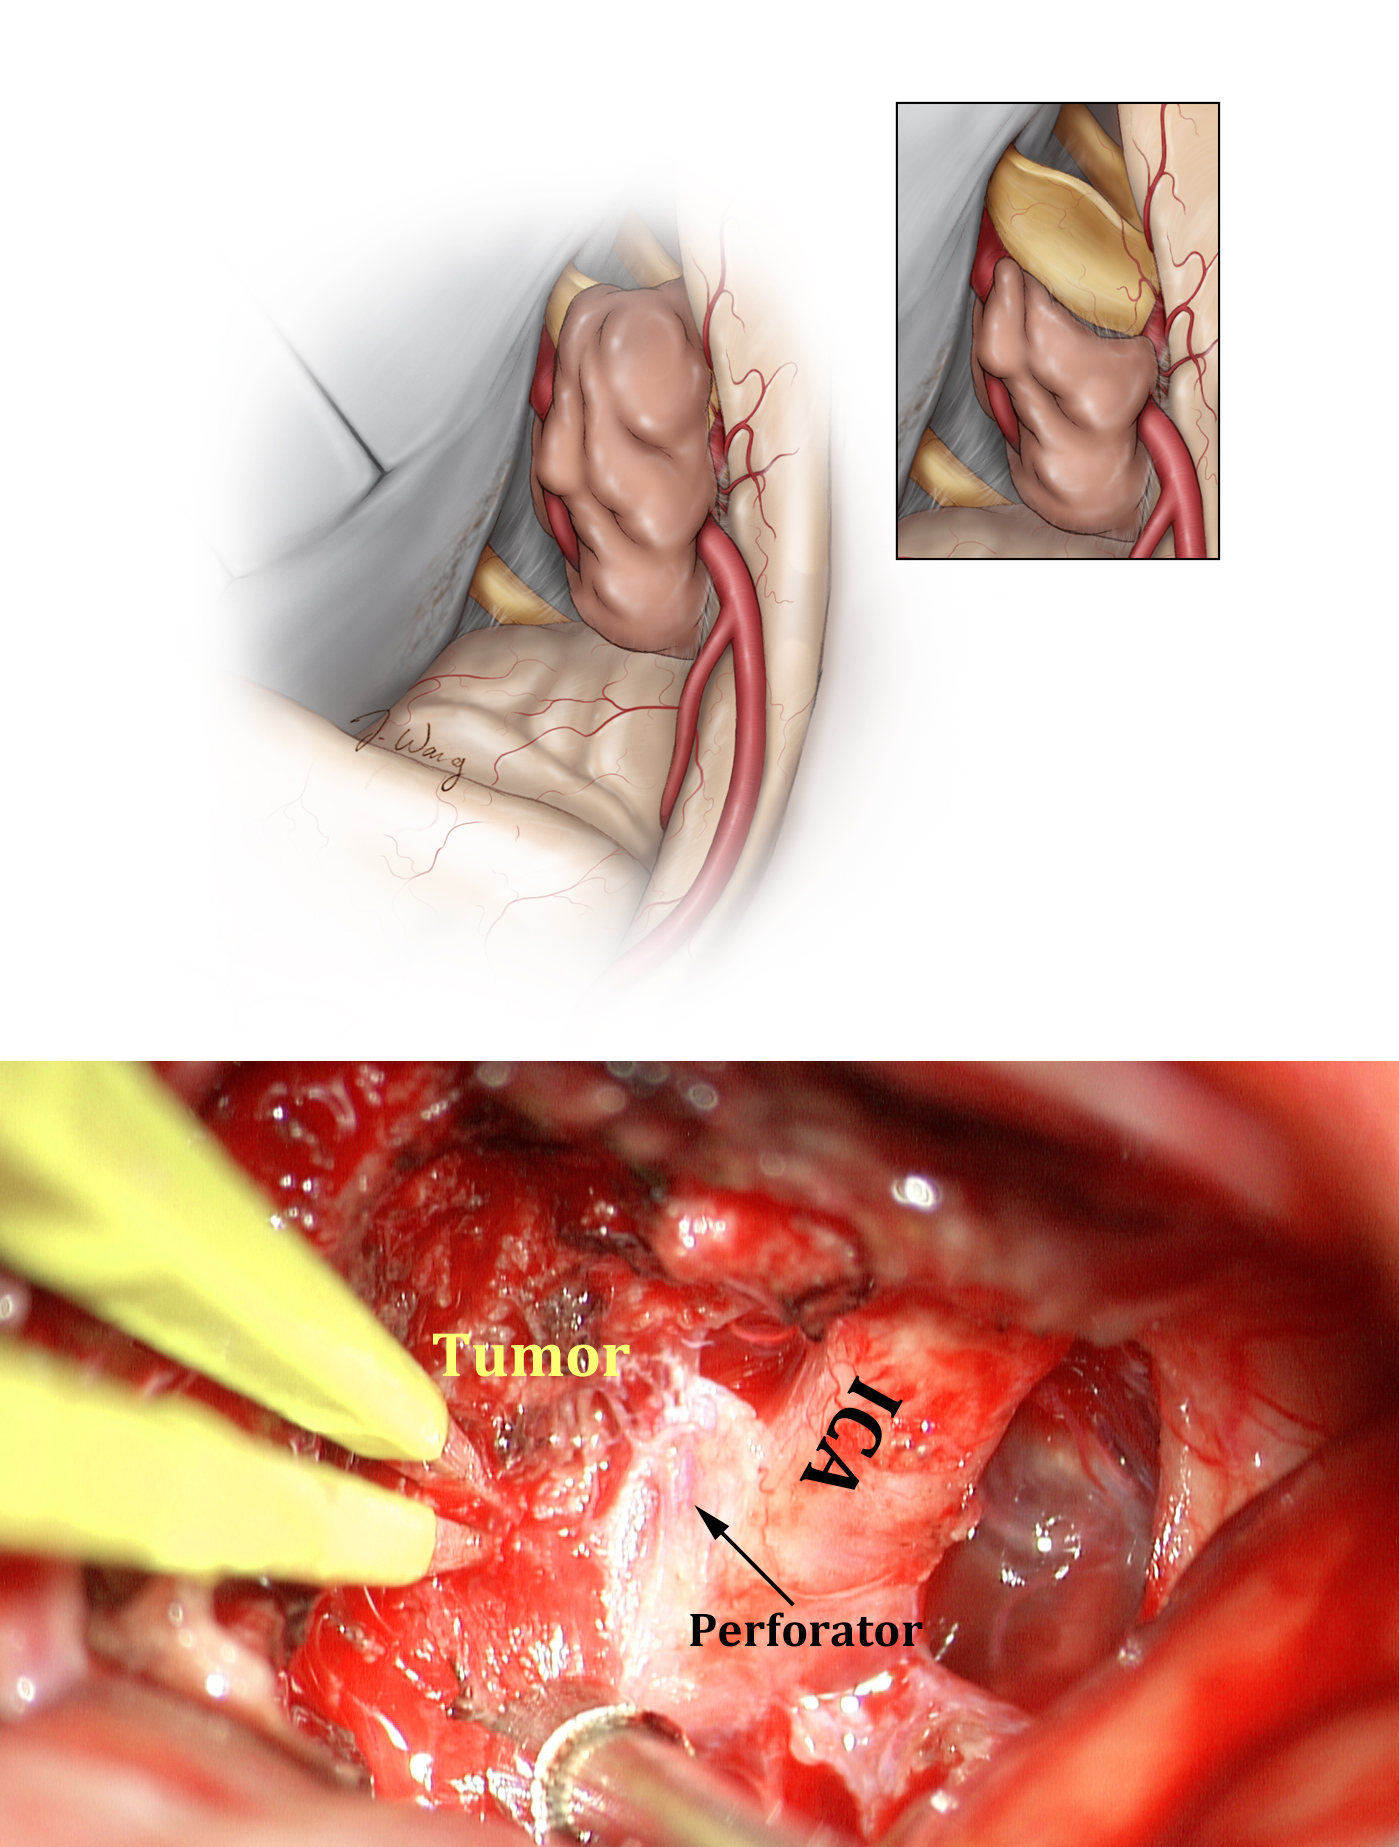 Figure 16: The optic nerve is decompressed, but the adherent firm/calcified tumor encasing the vasculature is left behind to avoid injury to the perforating arteries (upper image). The lower intraoperative photo demonstrates the anterior choroidal artery or one of the perforators (arrow) encased by the tumor. This piece of the tumor was not manipulated.